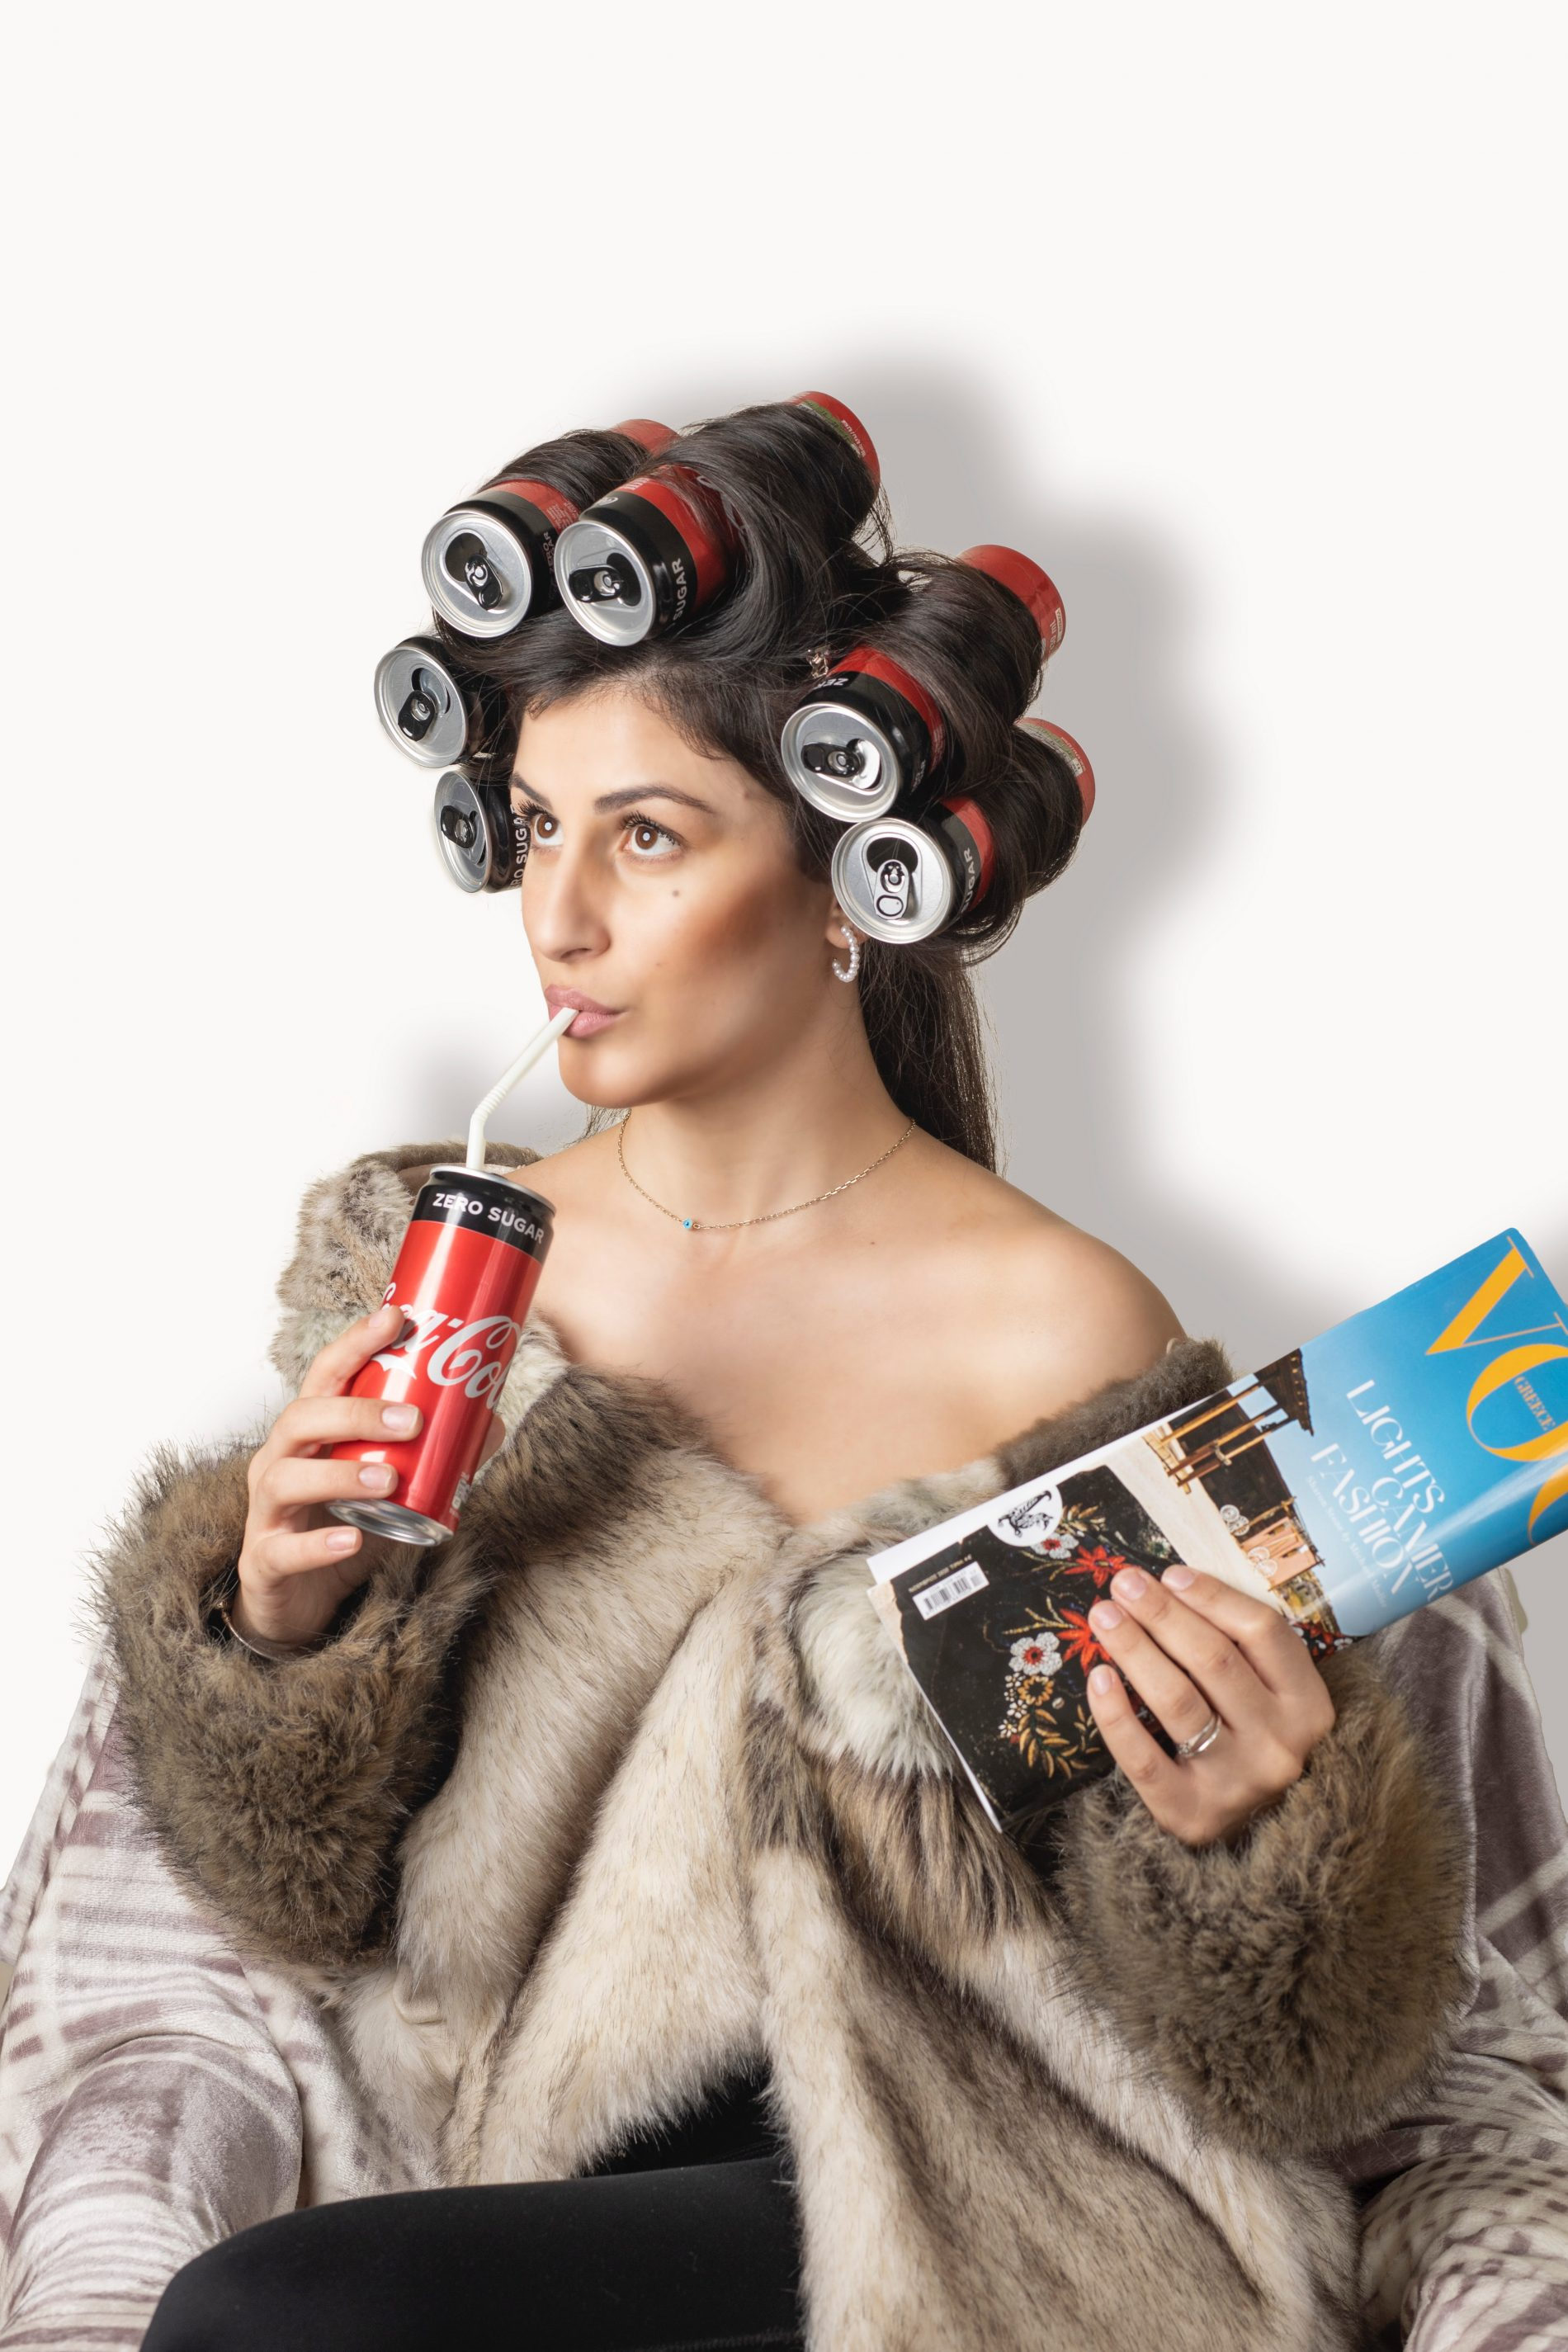 girl sipping on coke with coke cans as hair rollers